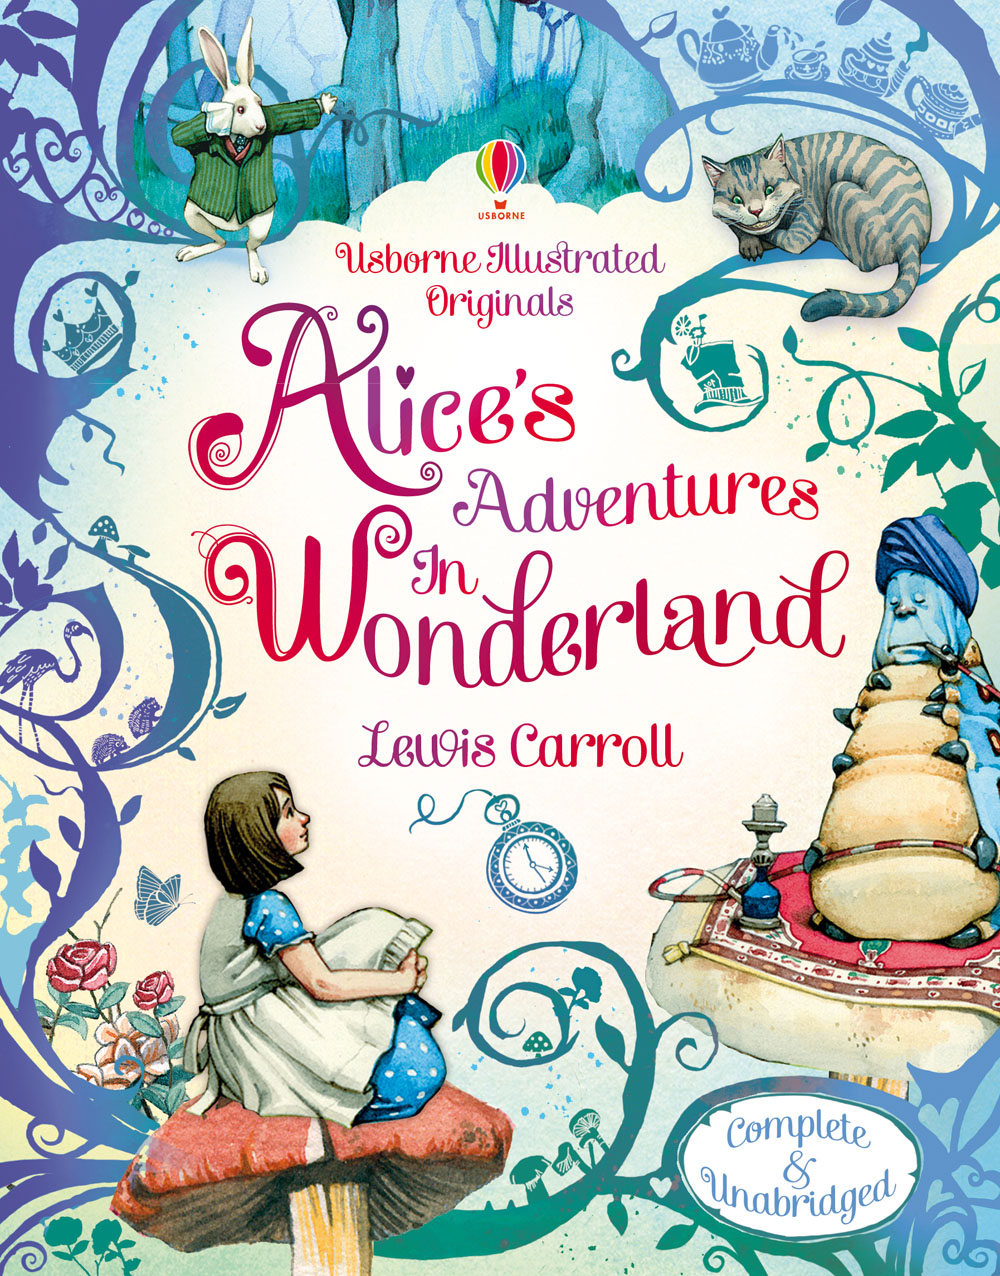 Alice'-s Adventures in Wonderland